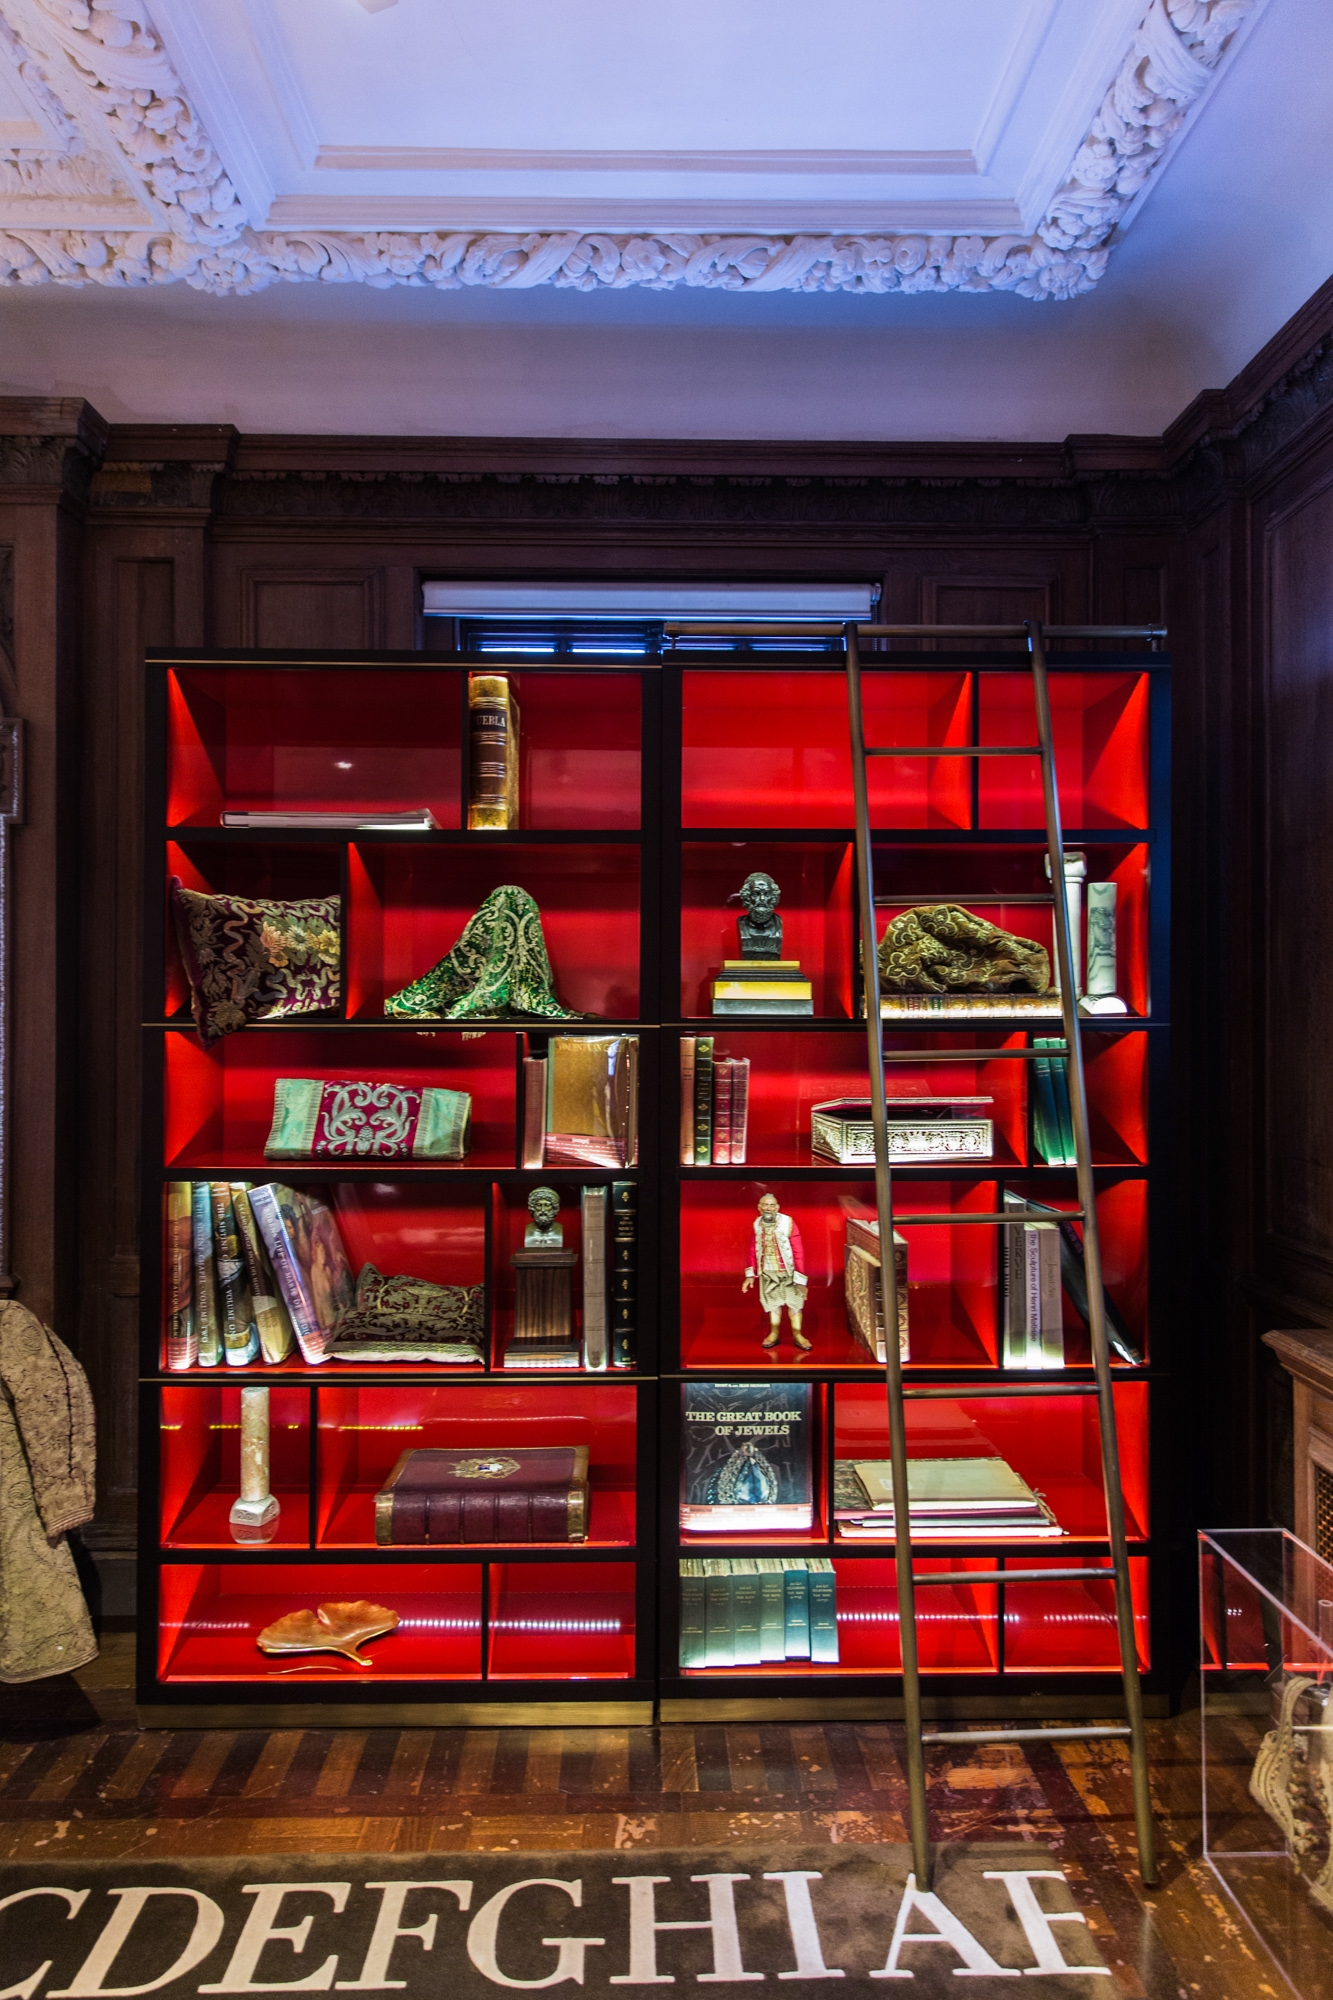 Maison assouline a lovely grown up spot that 39 s not my age for Maison london